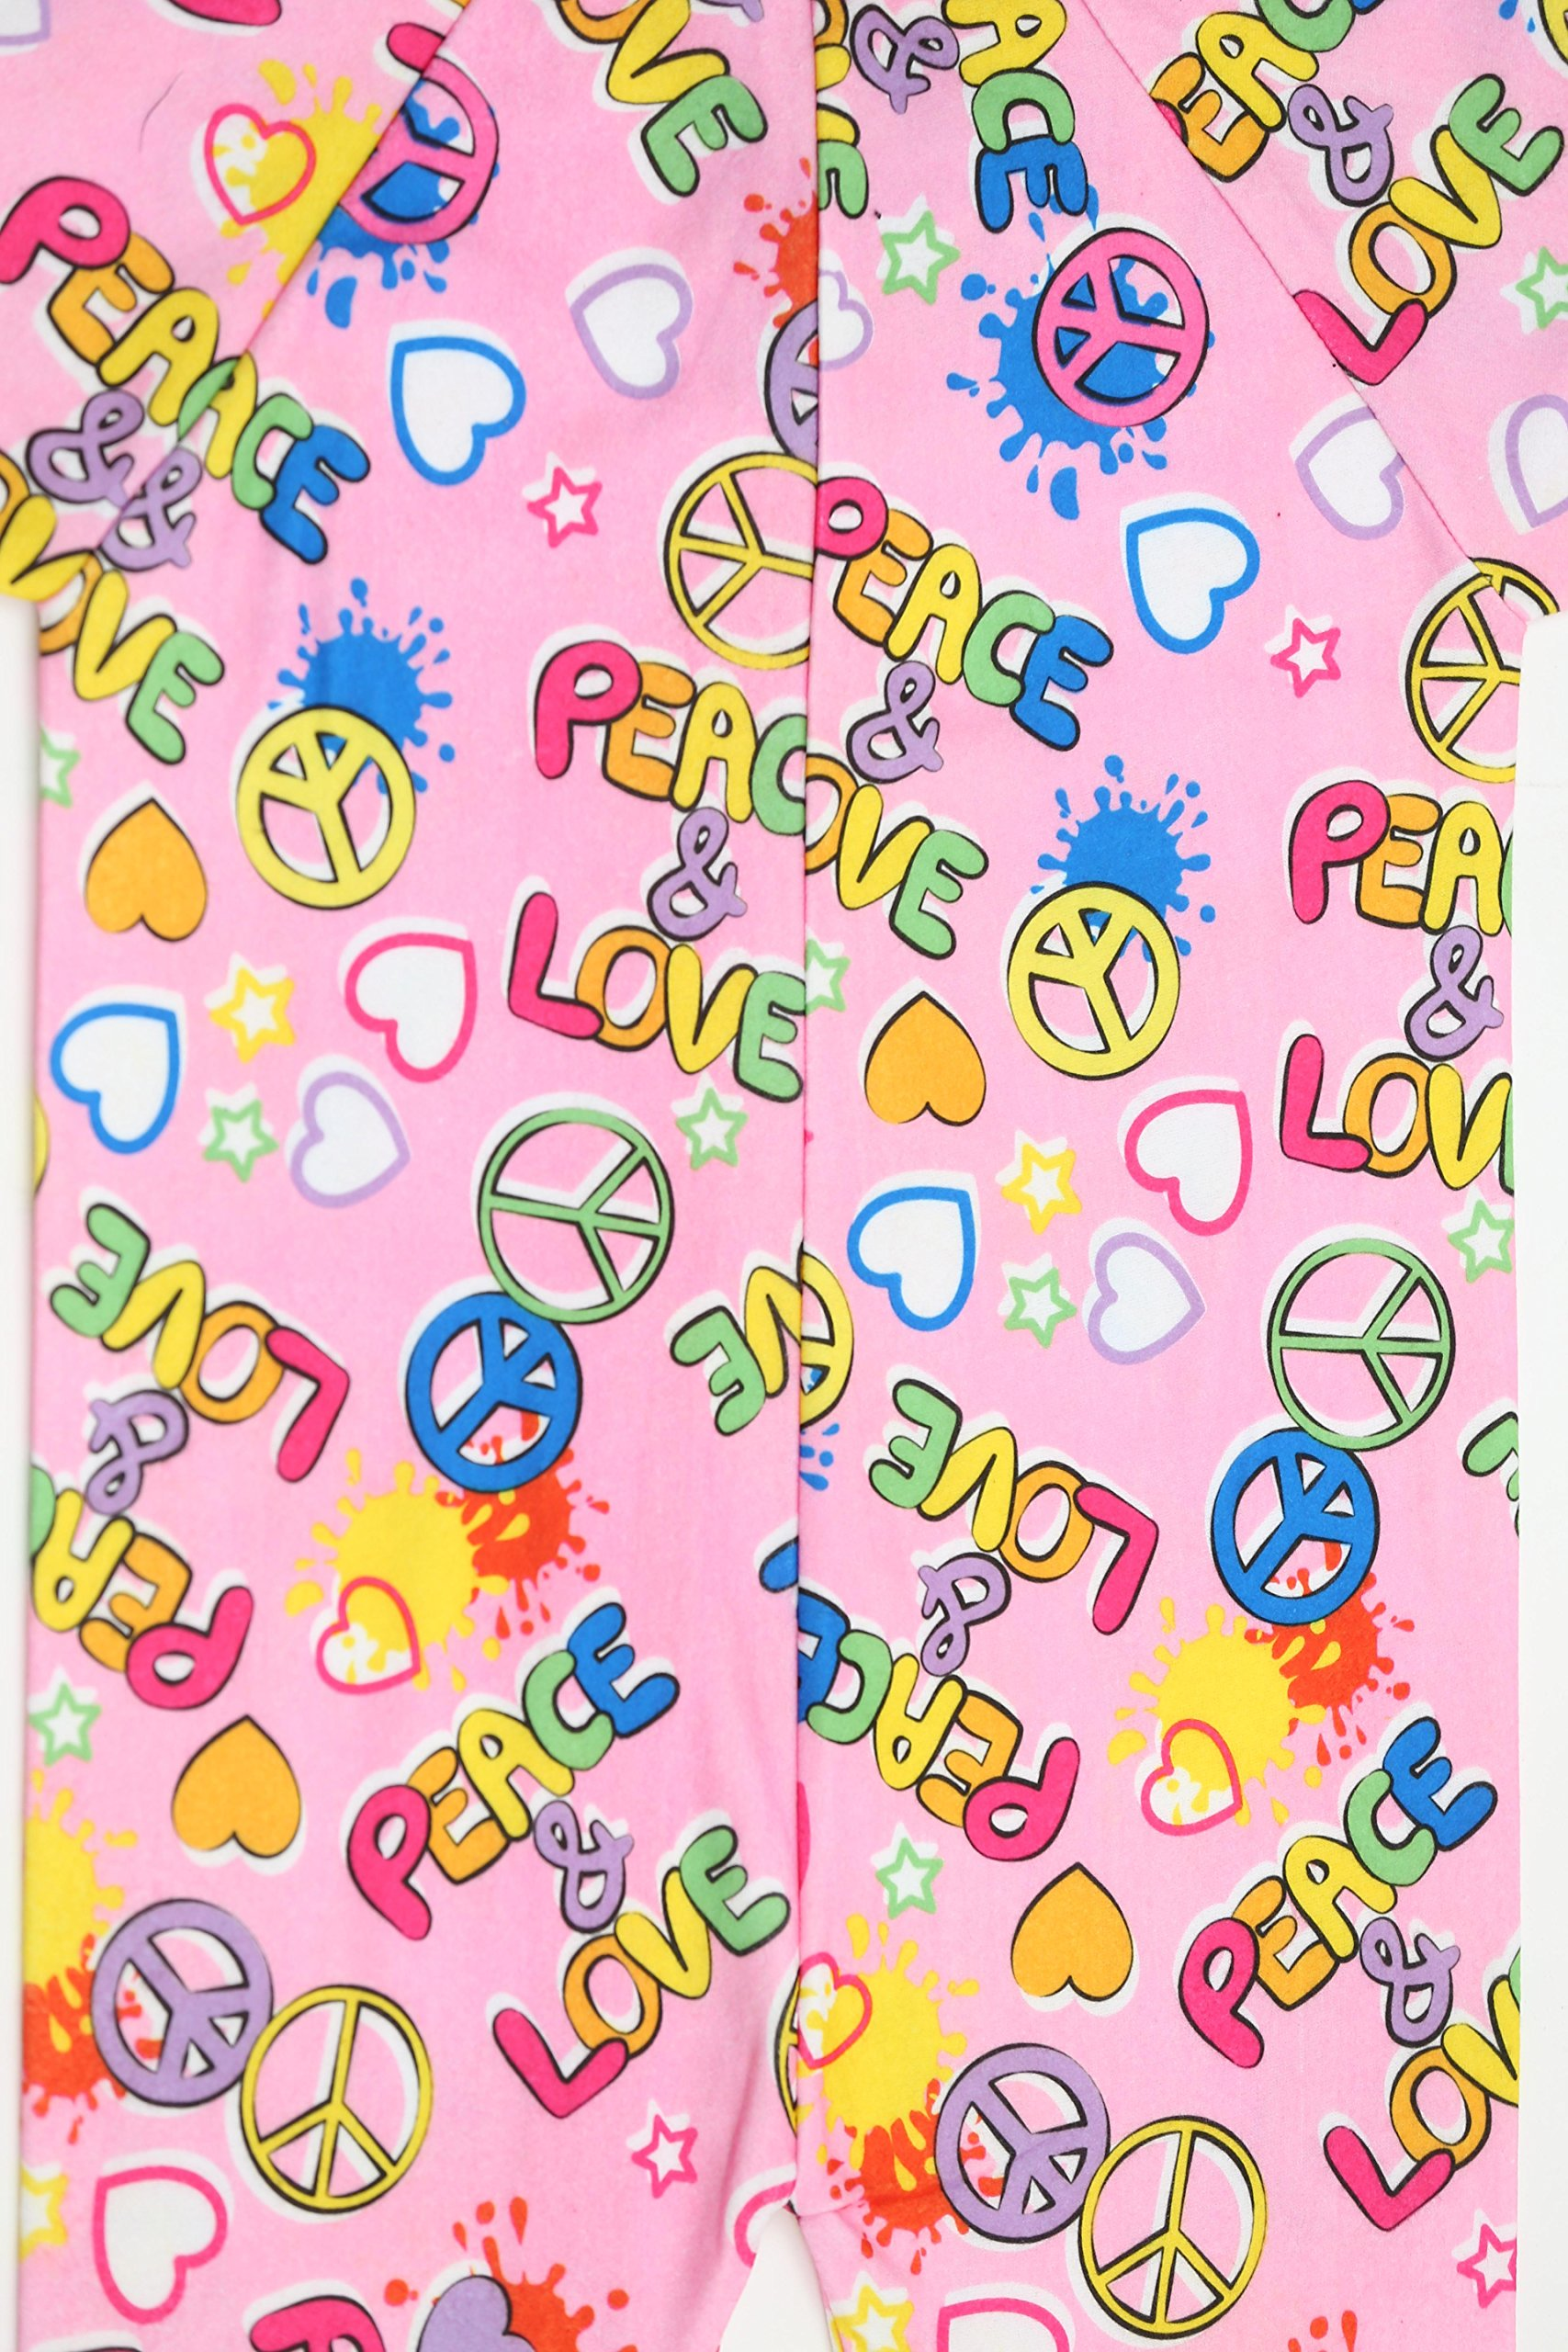 Just Love Printed Flannel Blanket Sleepers Peace Love Girls' 10-12 by Just Love (Image #1)